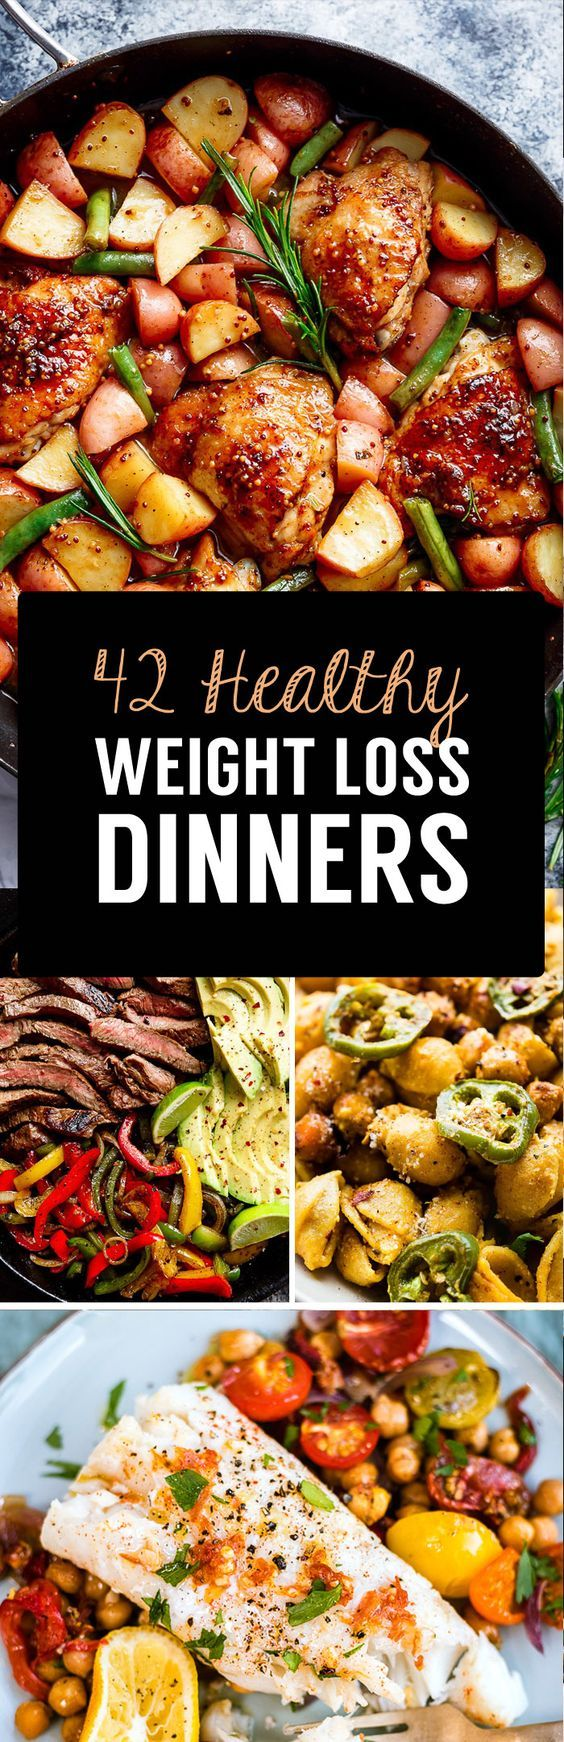 Delicious meals make losing weight fast and simple. If you enjoy the food you are sitting down to, it makes sticking to a healthy,